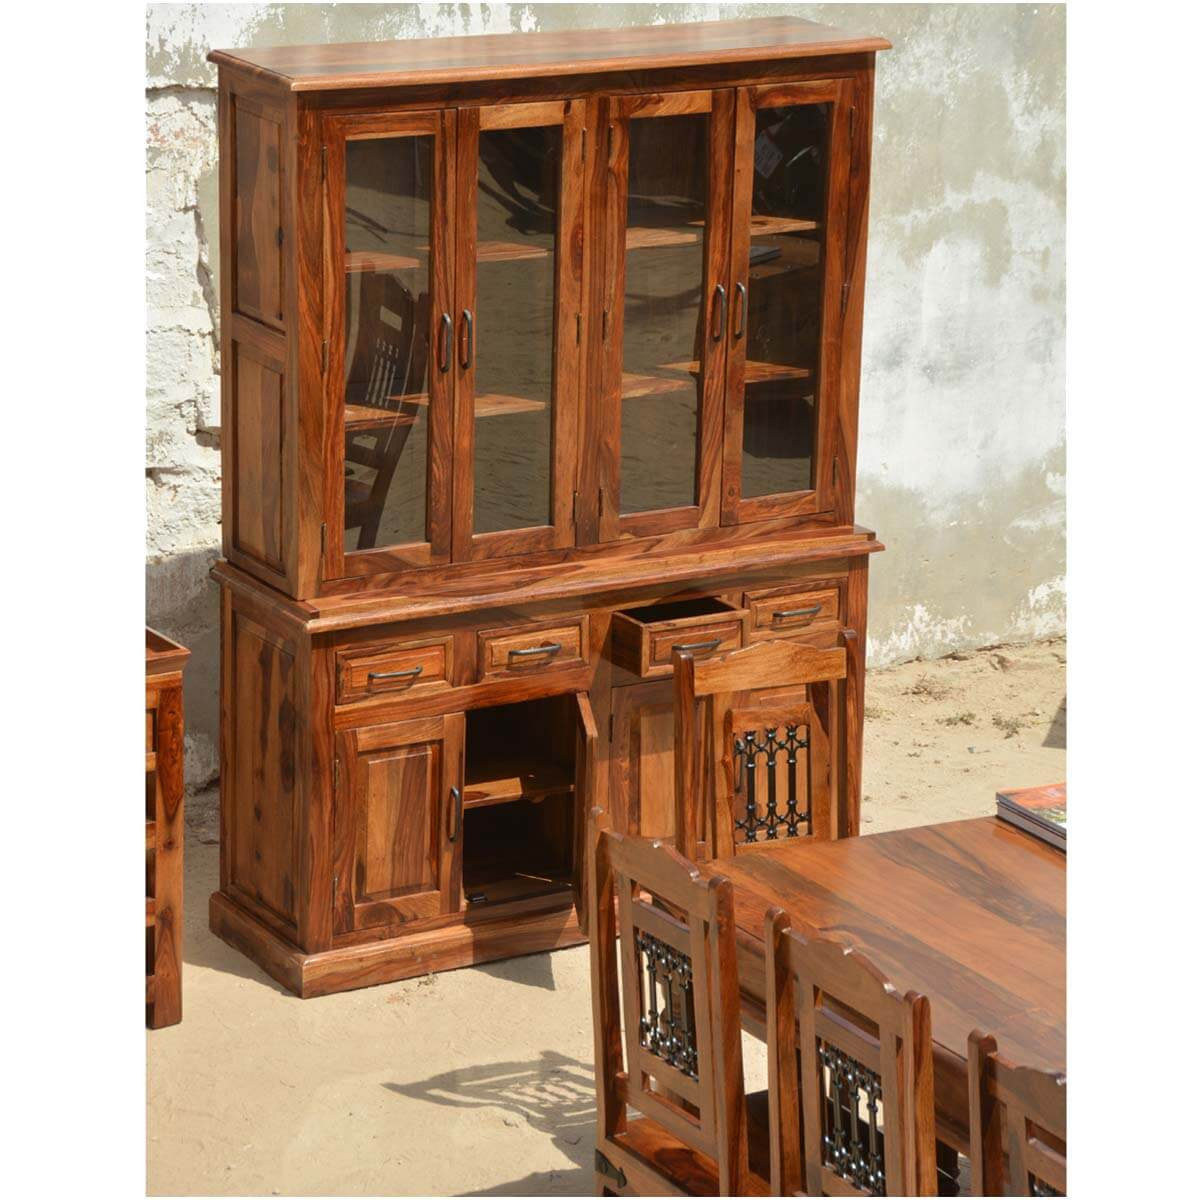 Dallas Ranch Solid Wood Rustic Dining Table Chairs Hutch Set: Camelot 13p Solid Wood Dining Set Buffet Breakfront Table